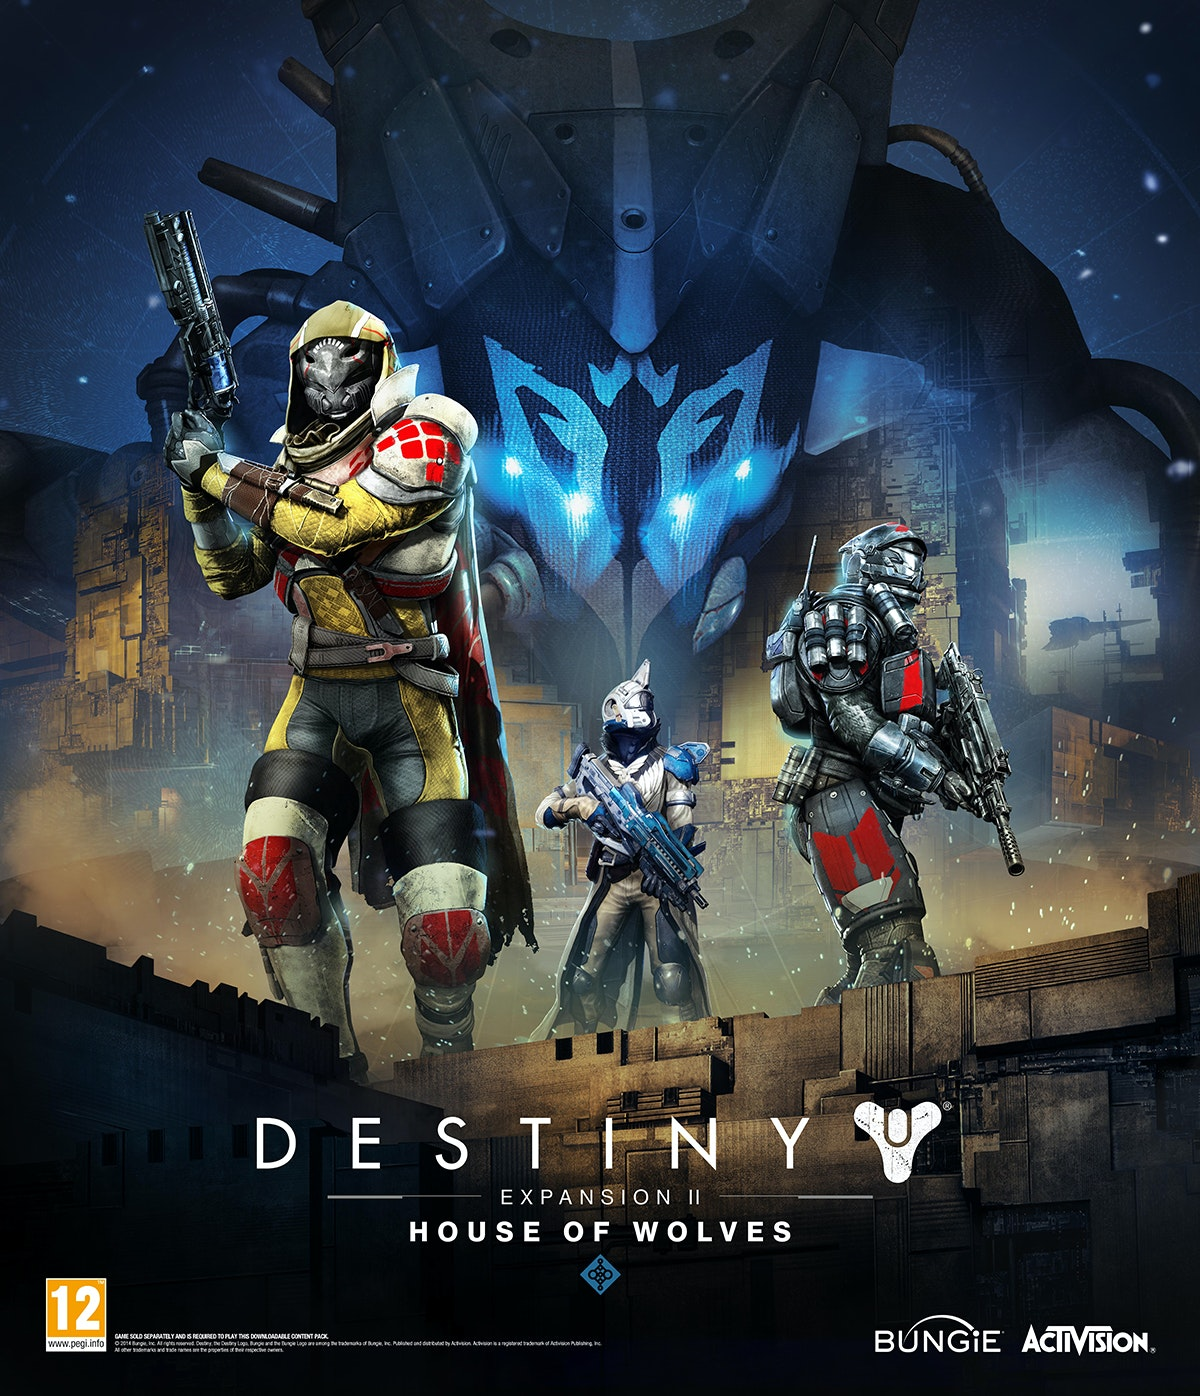 PS4 and Destiny goodies sweepstakes